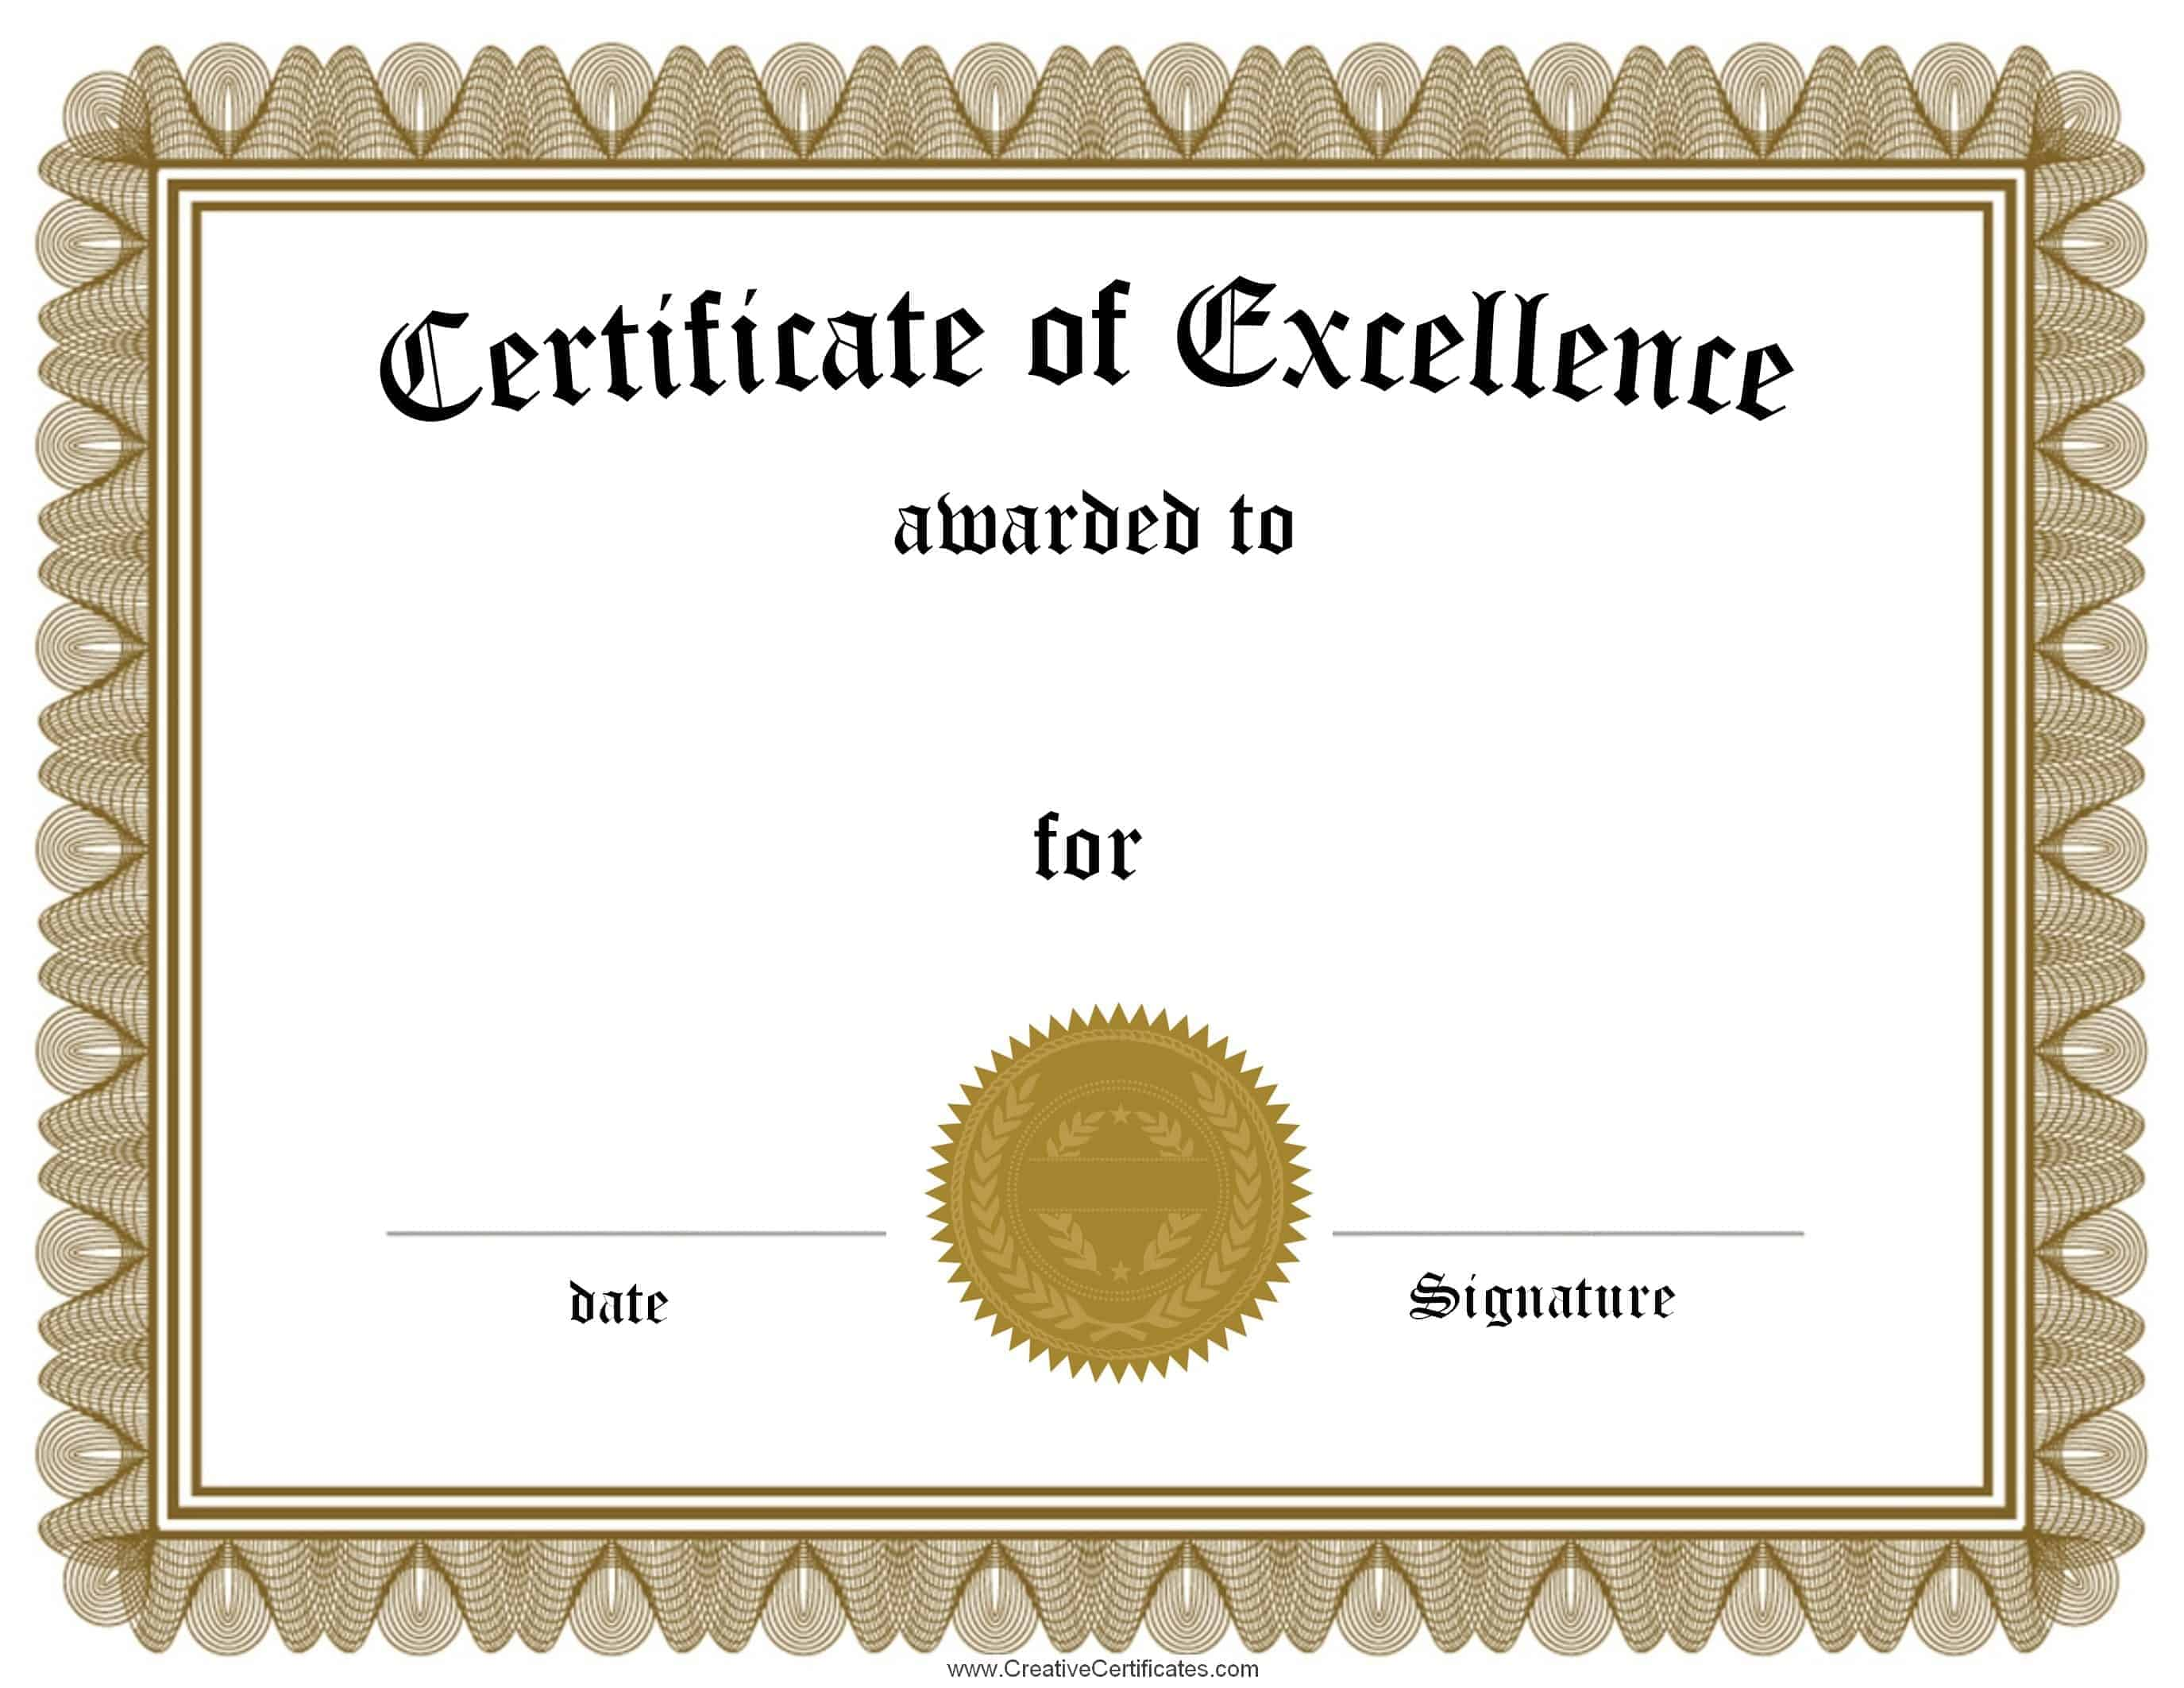 Free Customizable Certificate of Achievement – Certificate of Excellence Wording